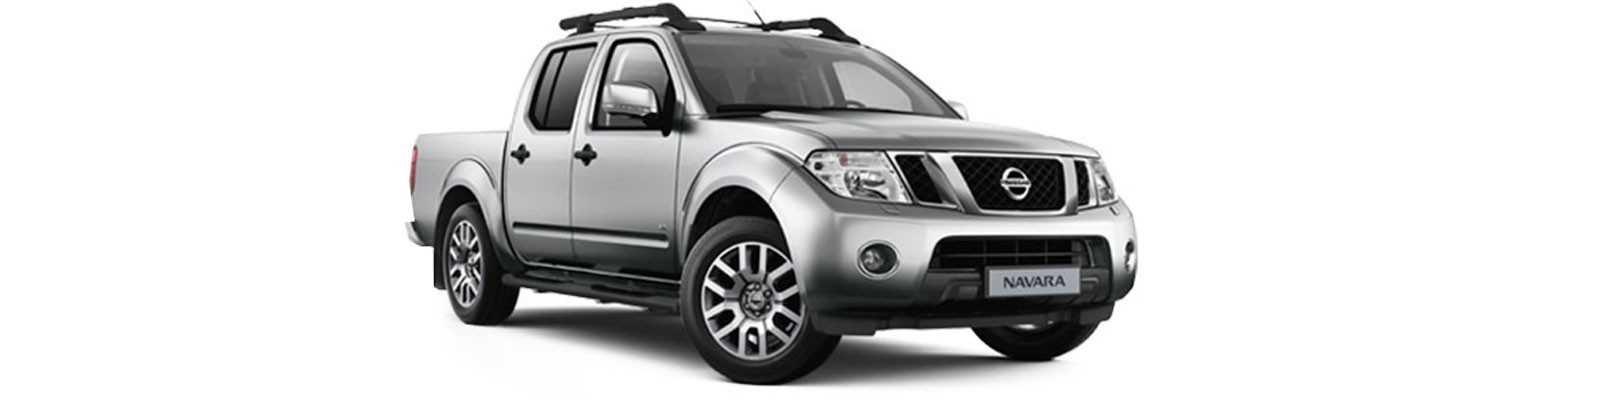 Accessories For Nissan D40 Navara Double Cab From 2010 To 2015